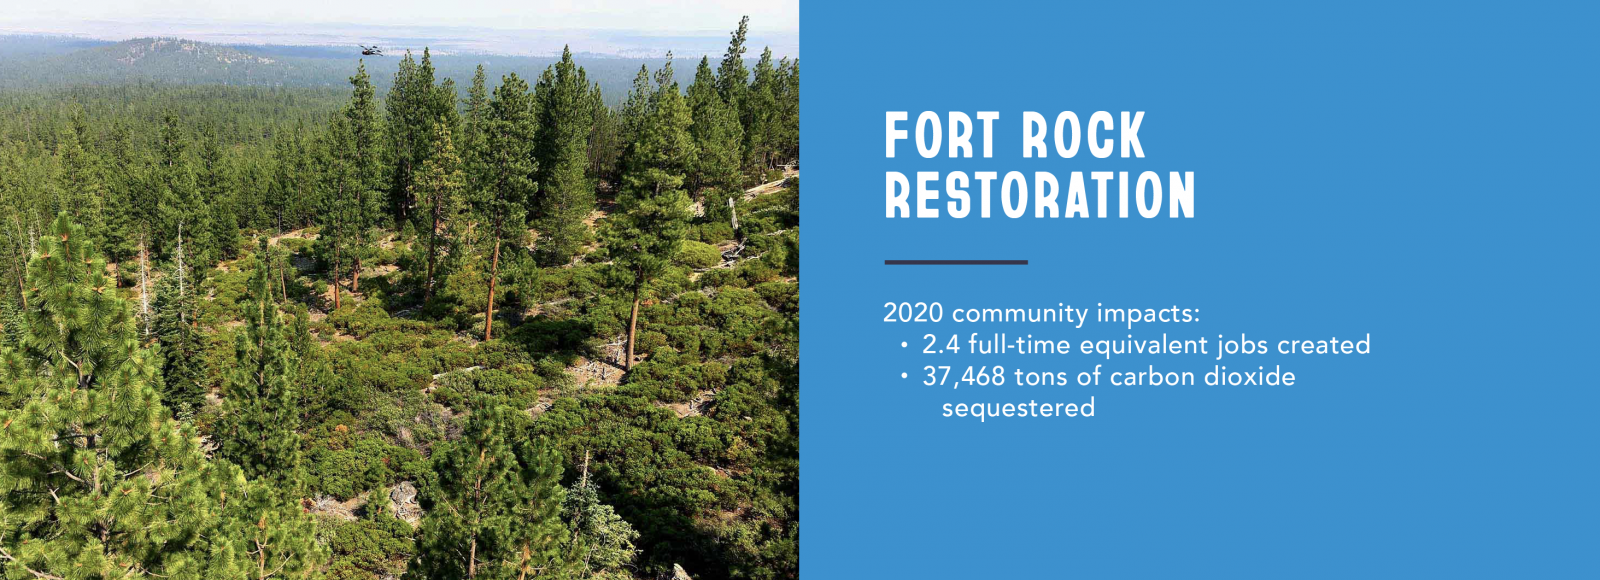 A photo placed next to a graphic of white text over a blue background. The photo shows a pine forest photographed from a high vantage point. The white text on the graphic reads: Fort Rock Restoration: / 2020 community impacts: / 2.4 full-time equivalent jobs created / 37,468 tons of carbon dioxide sequestered